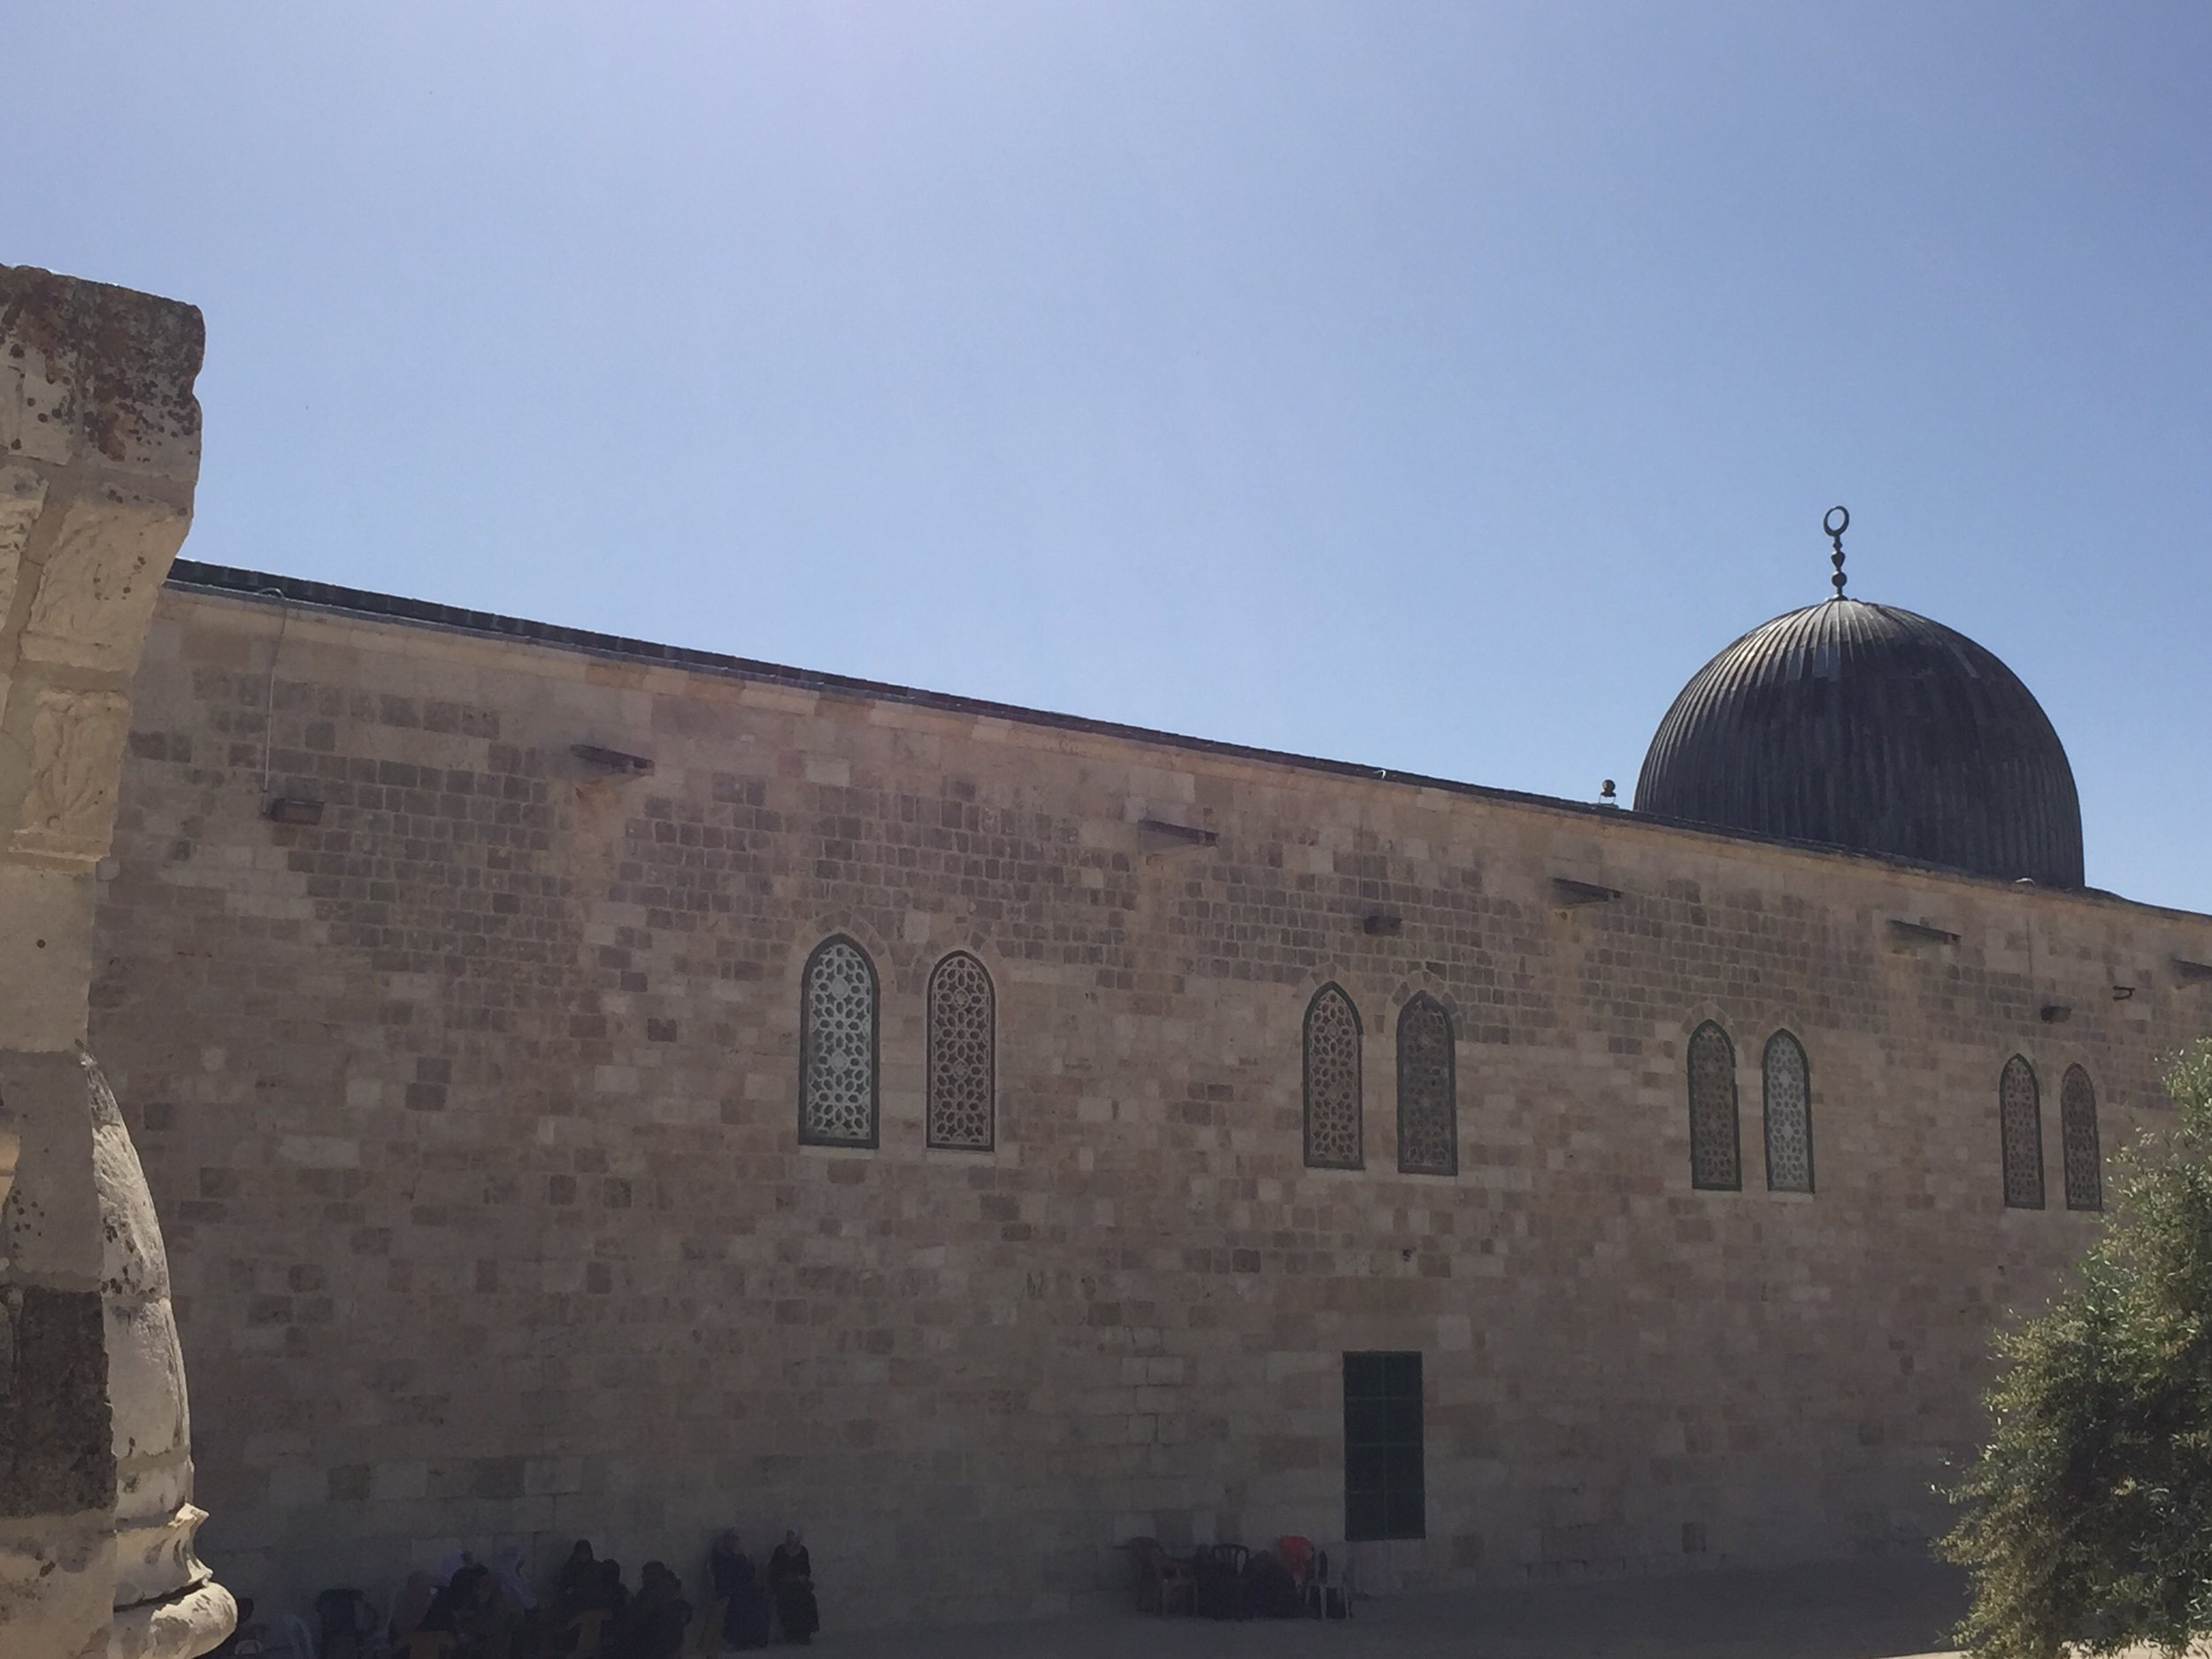 Matthew Williams/The Conflict Archives: The Al-Aqsa Mosque, the third holiest site in Islam.